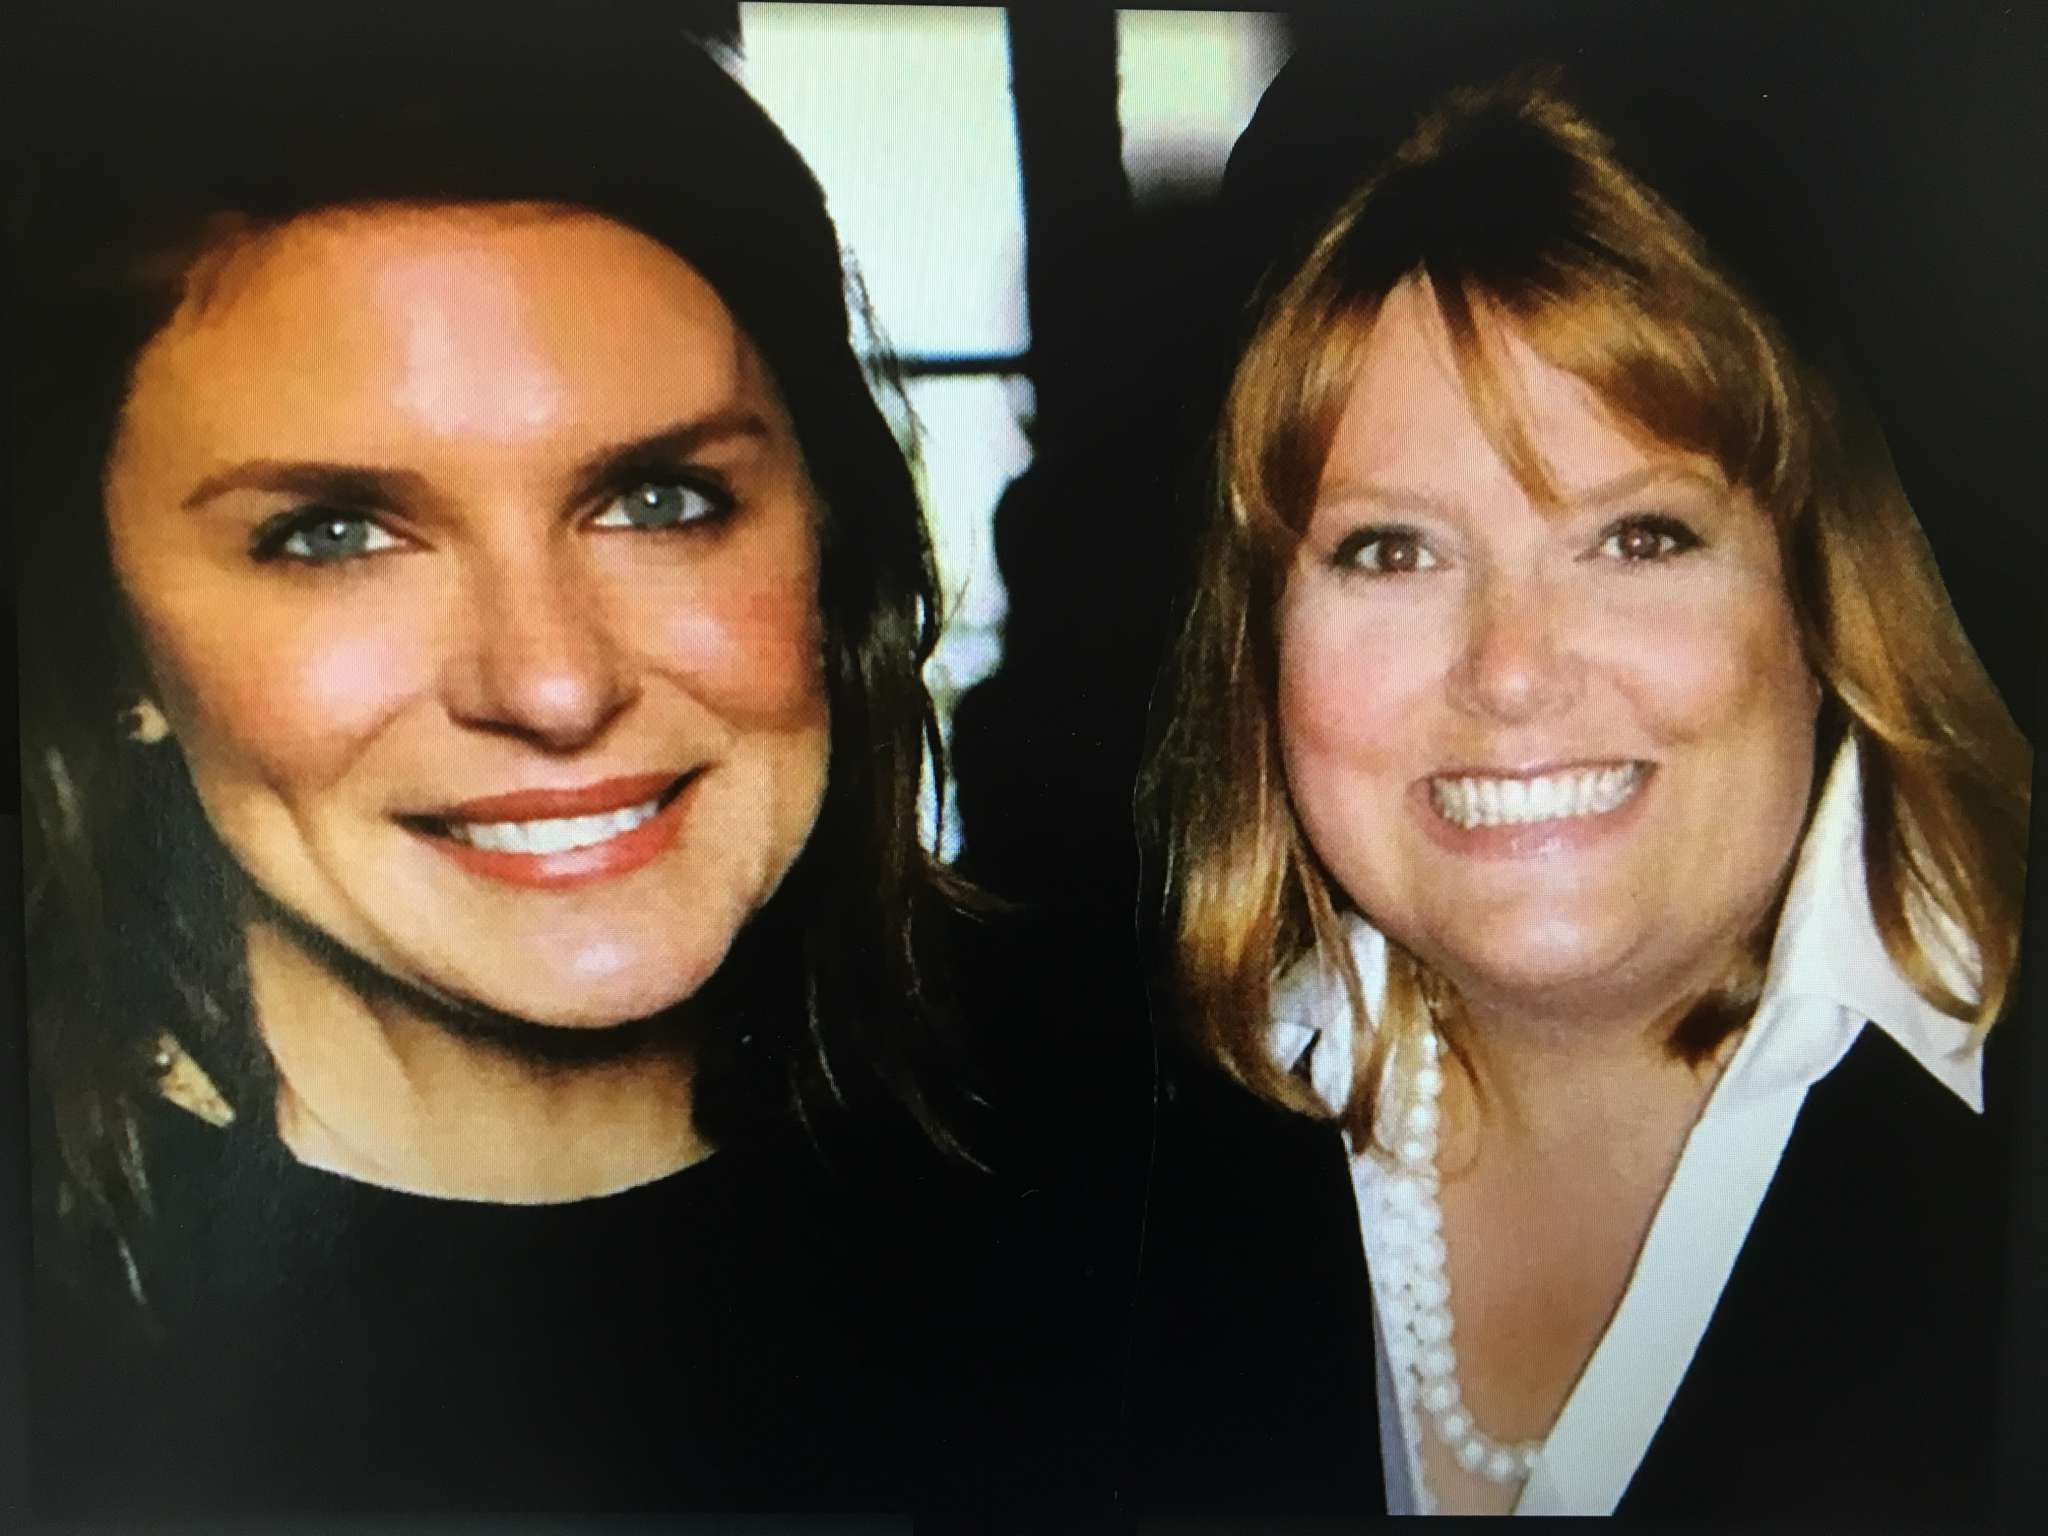 Vivian Howard and a woman posing for the camera